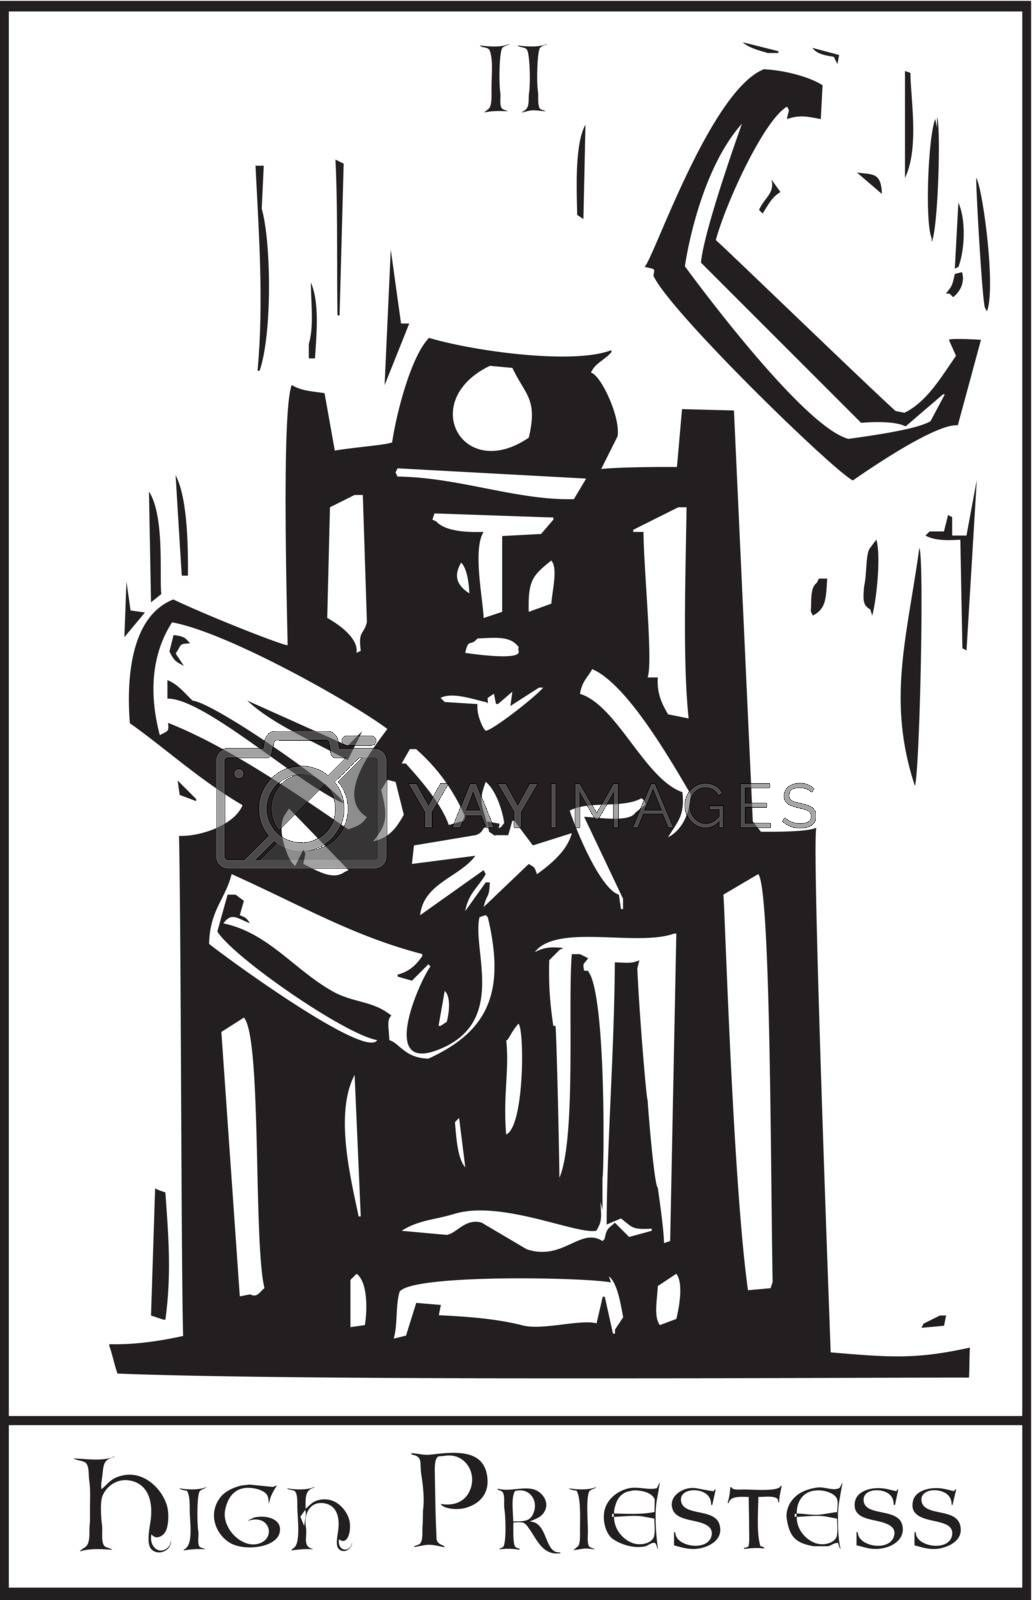 Woodcut expressionist style image of the Tarot Card for the Priestess.